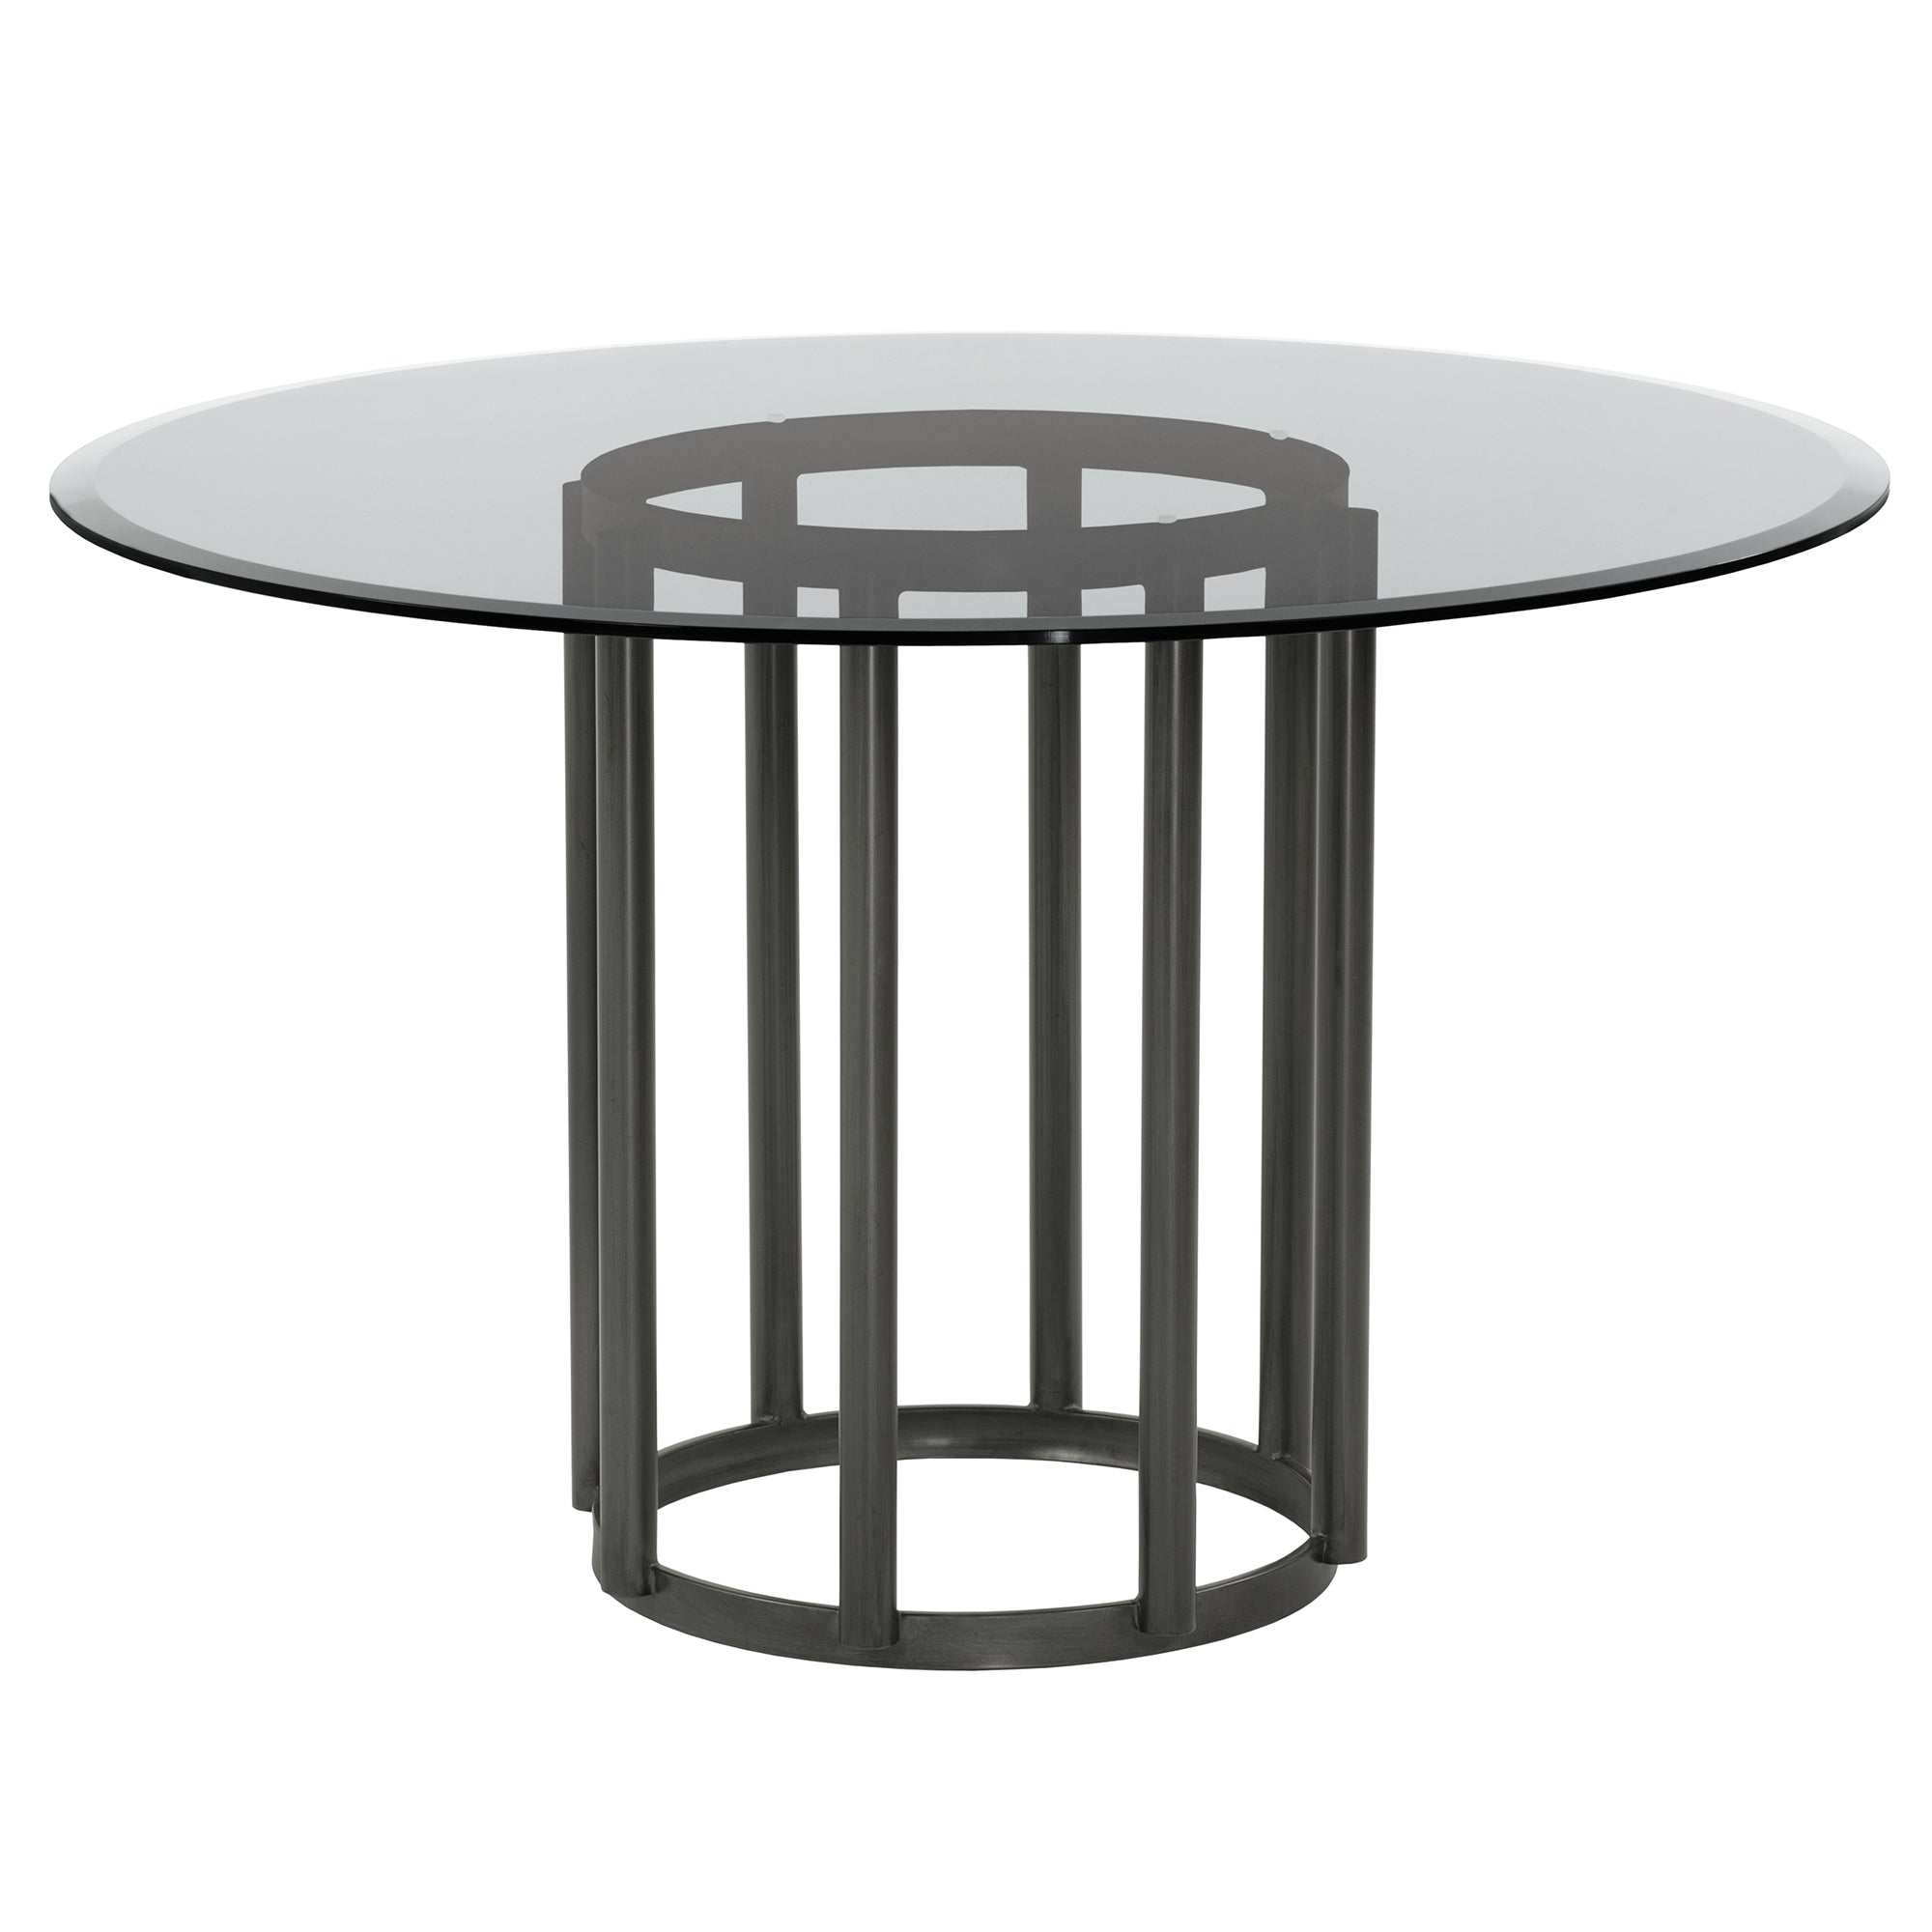 Contemporary | Finish | Clear | Metal | Glass | Round | Table | Live | Dine | Top